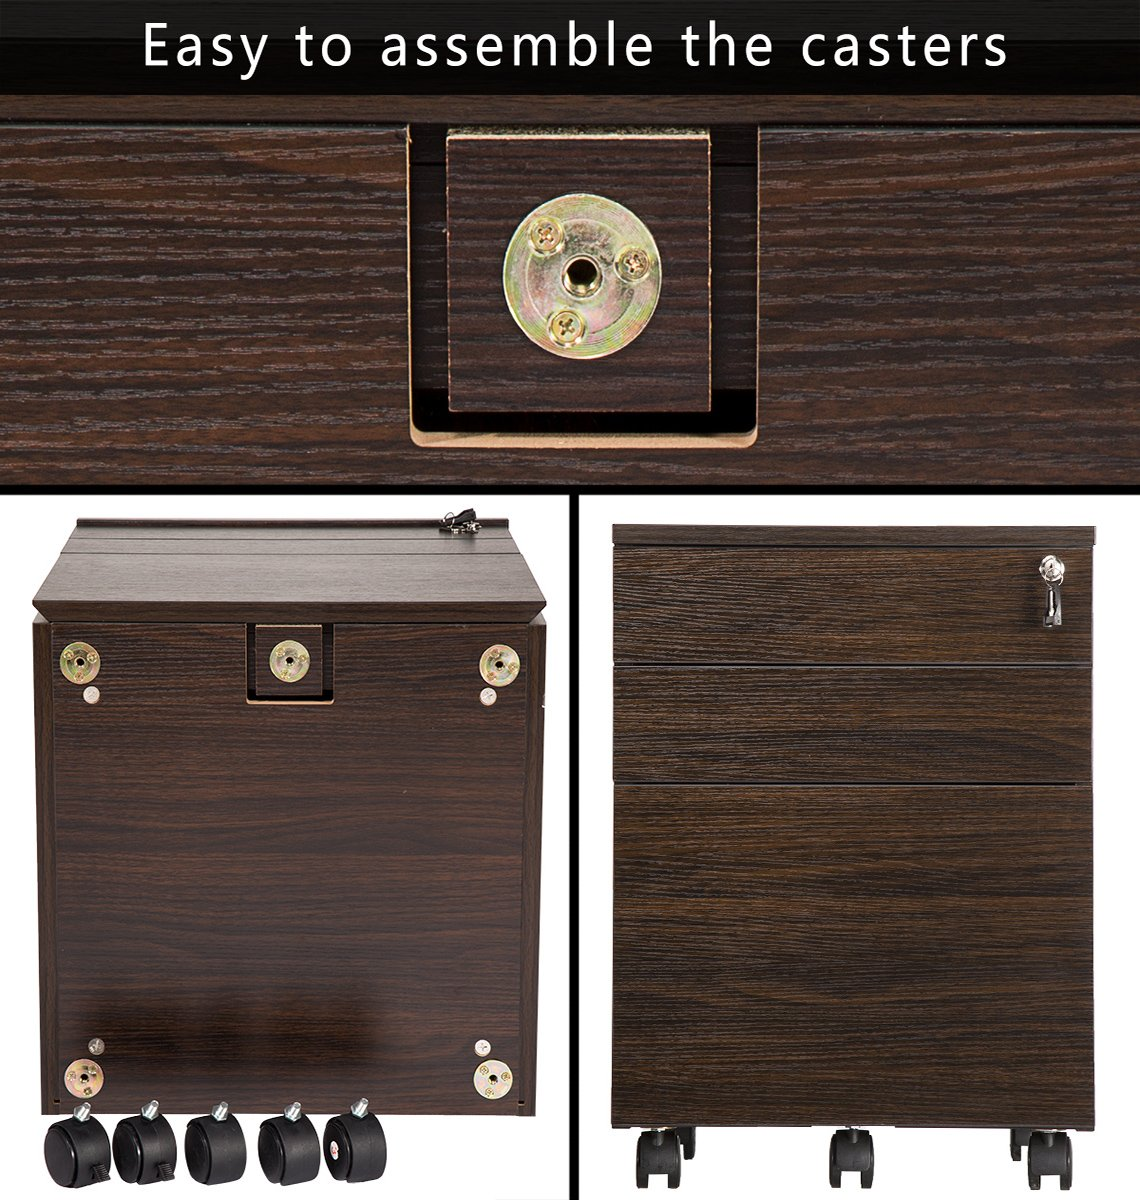 TOPSKY 3 Drawer Wood Mobile File Cabinet Fully Assembled Except Casters (WALNUT) by TOPSKY (Image #6)